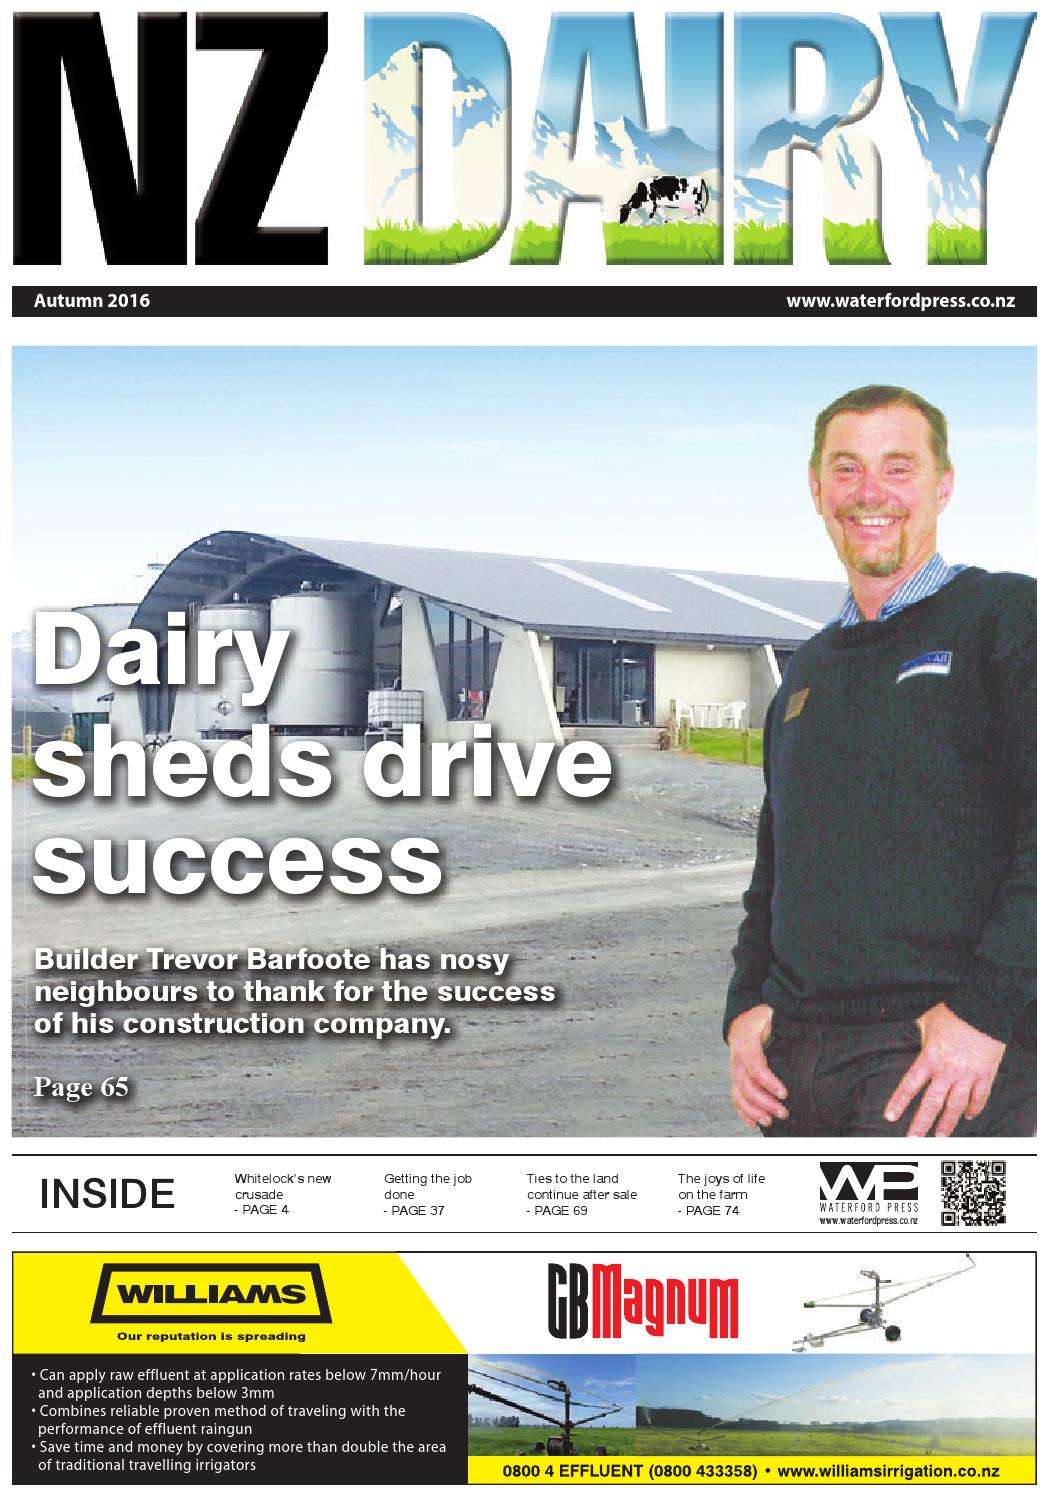 Nz Dairy 2016 Autumn Issue By Waterford Press Limited Issuu Tv Wiring Hamilton Uhf Antenna Aerial Installers Waikato